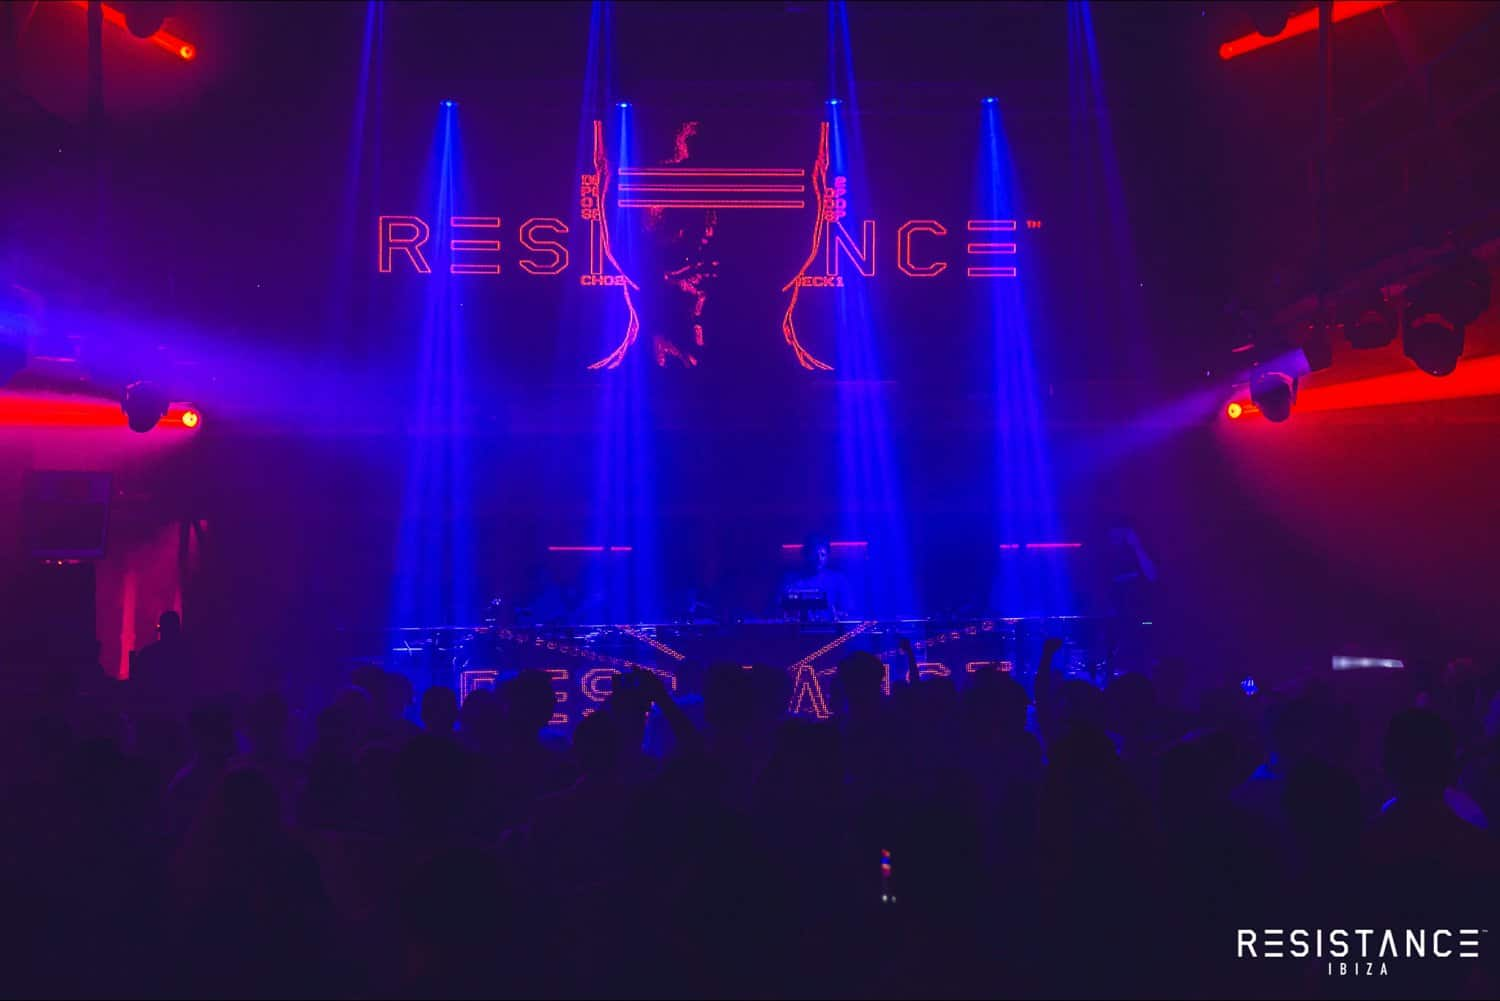 RESISTANCE Ibiza 2020 - Tickets, Events and Lineup 3